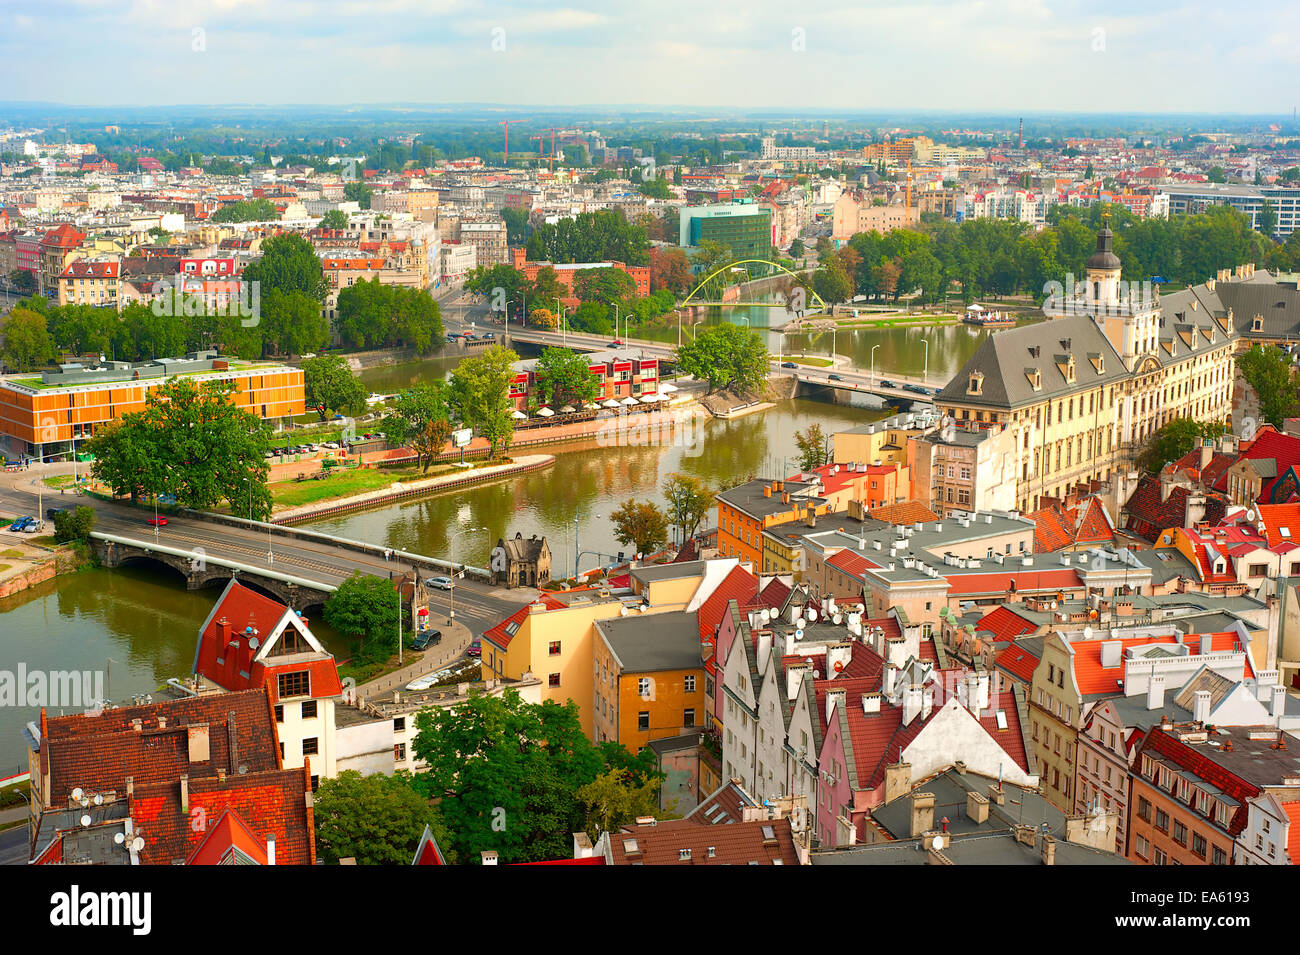 Wroclaw Old Town - Stock Image